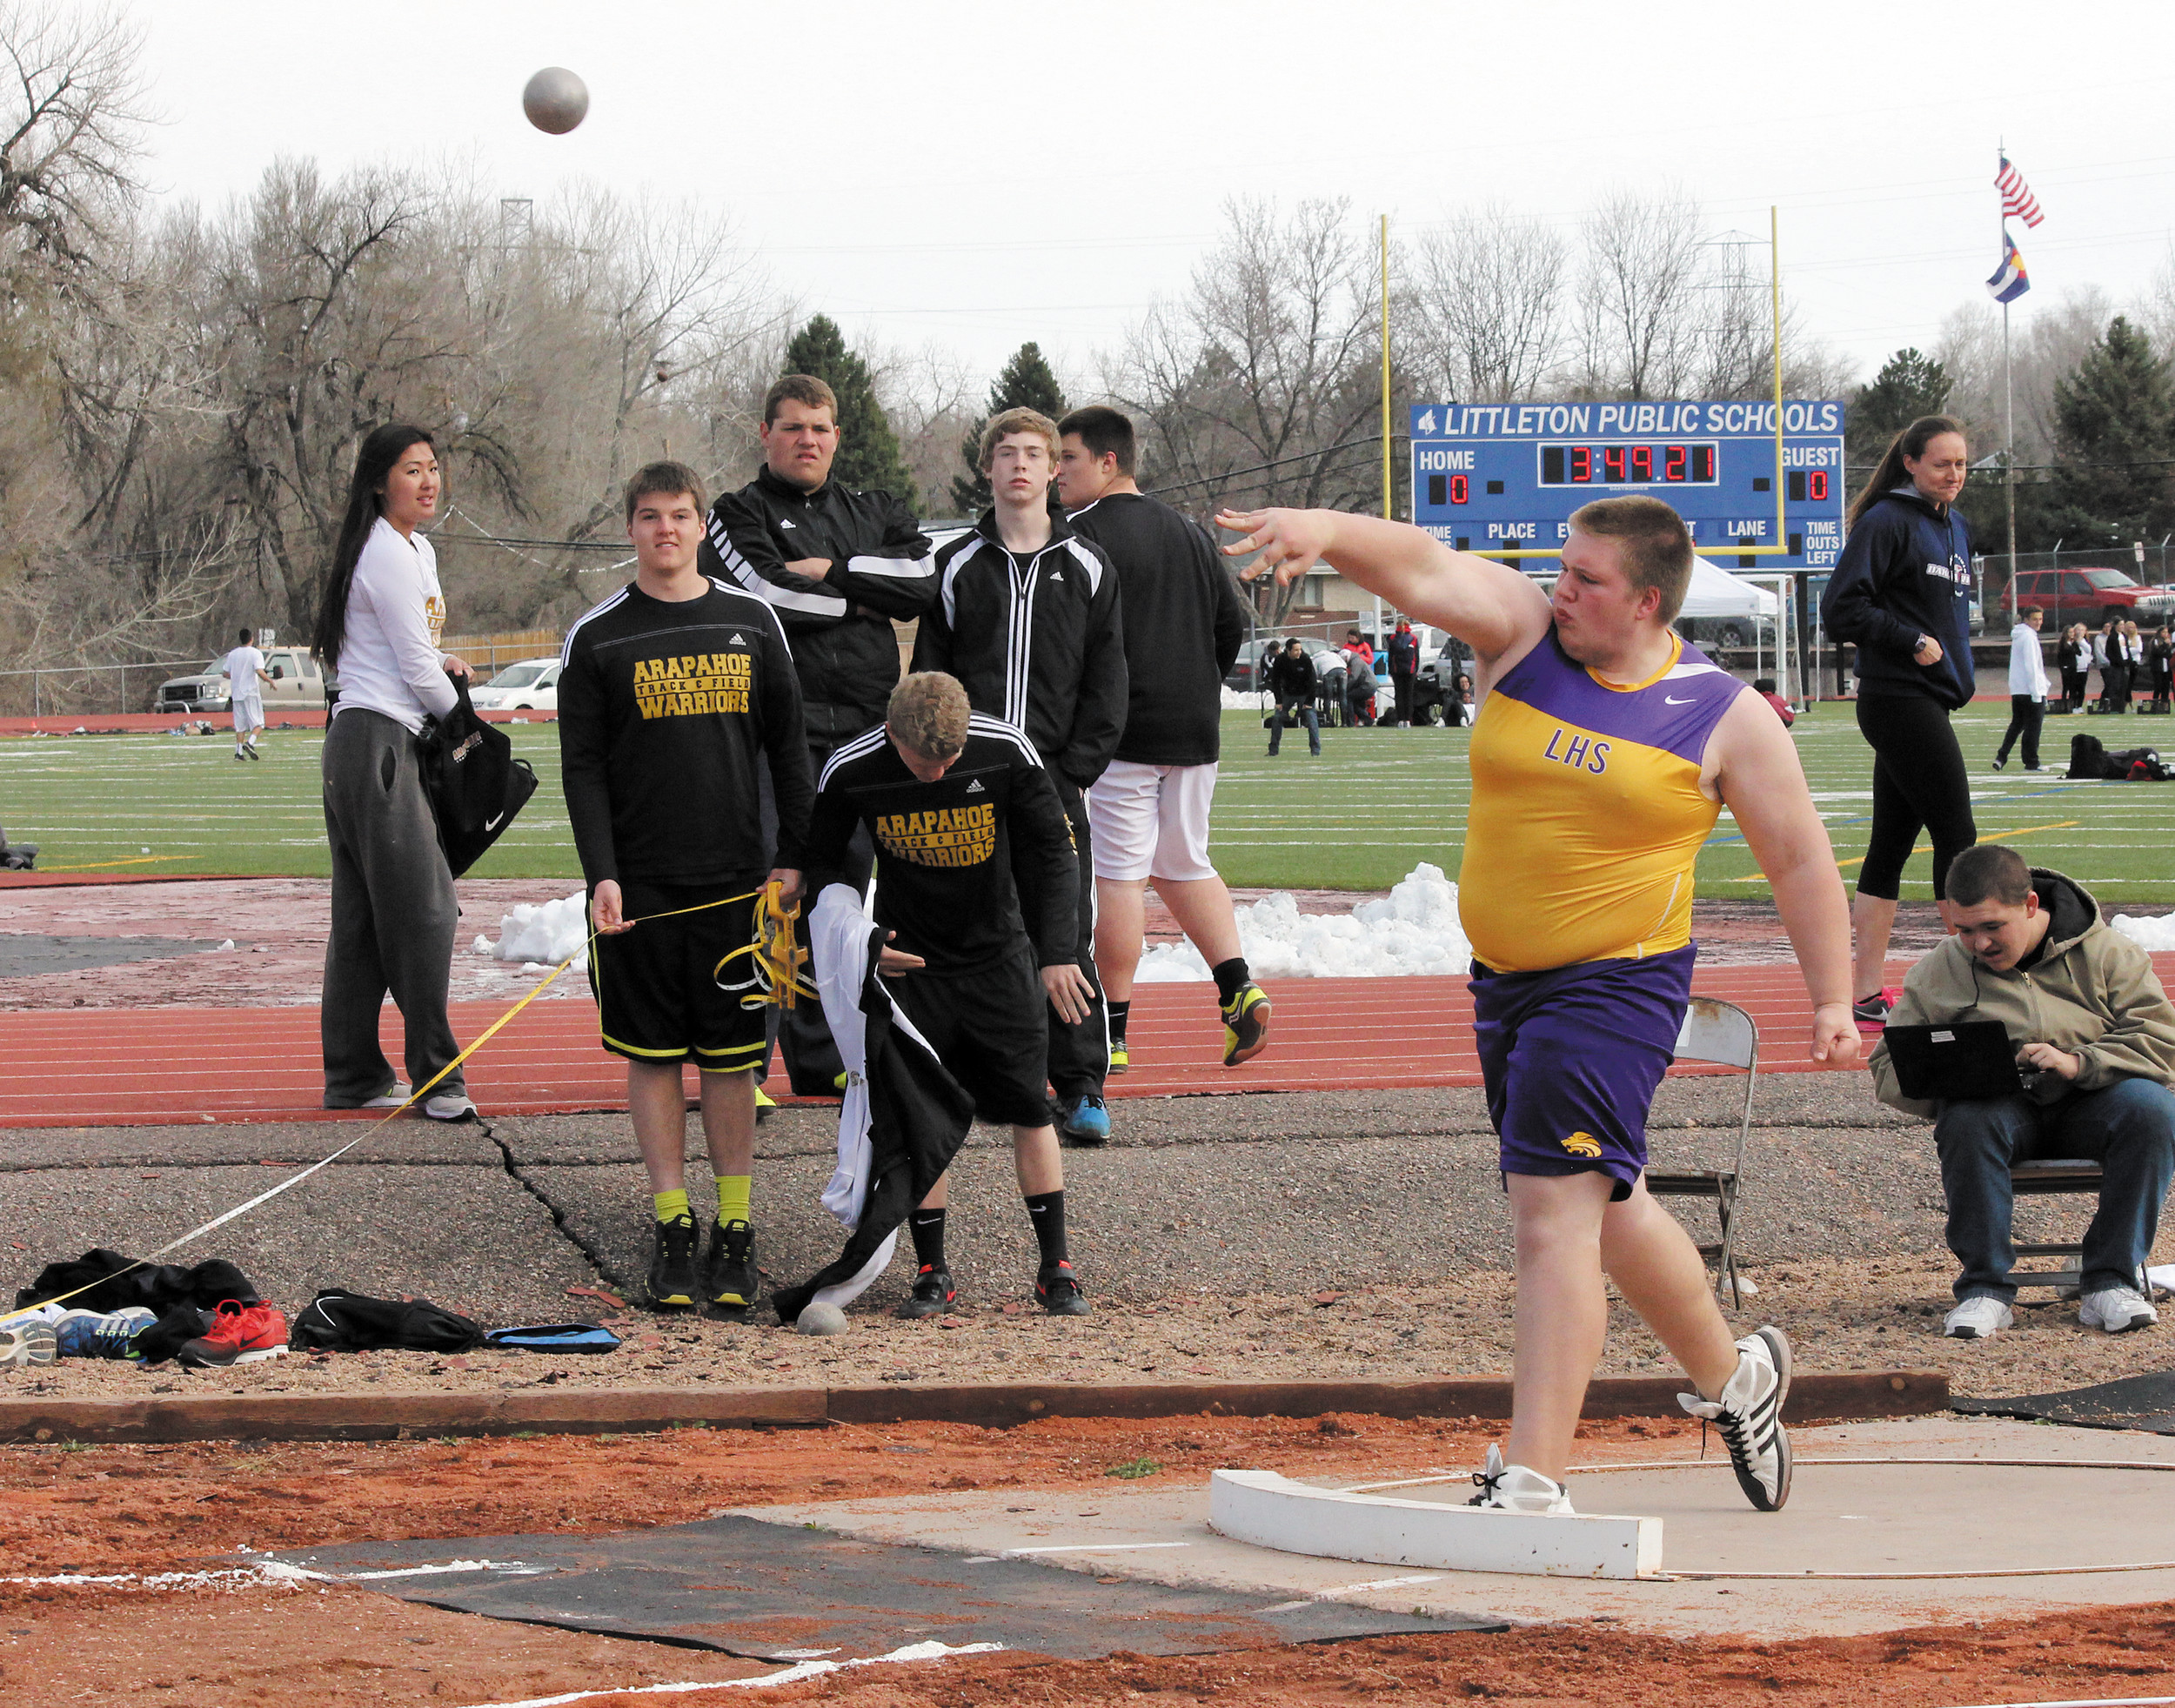 Littleton's Dave Bieber competes in the shot put event at the April 4 Littleton City Track Meet. Bieber finished 13th with a throw of 35 feet, 4 inches.